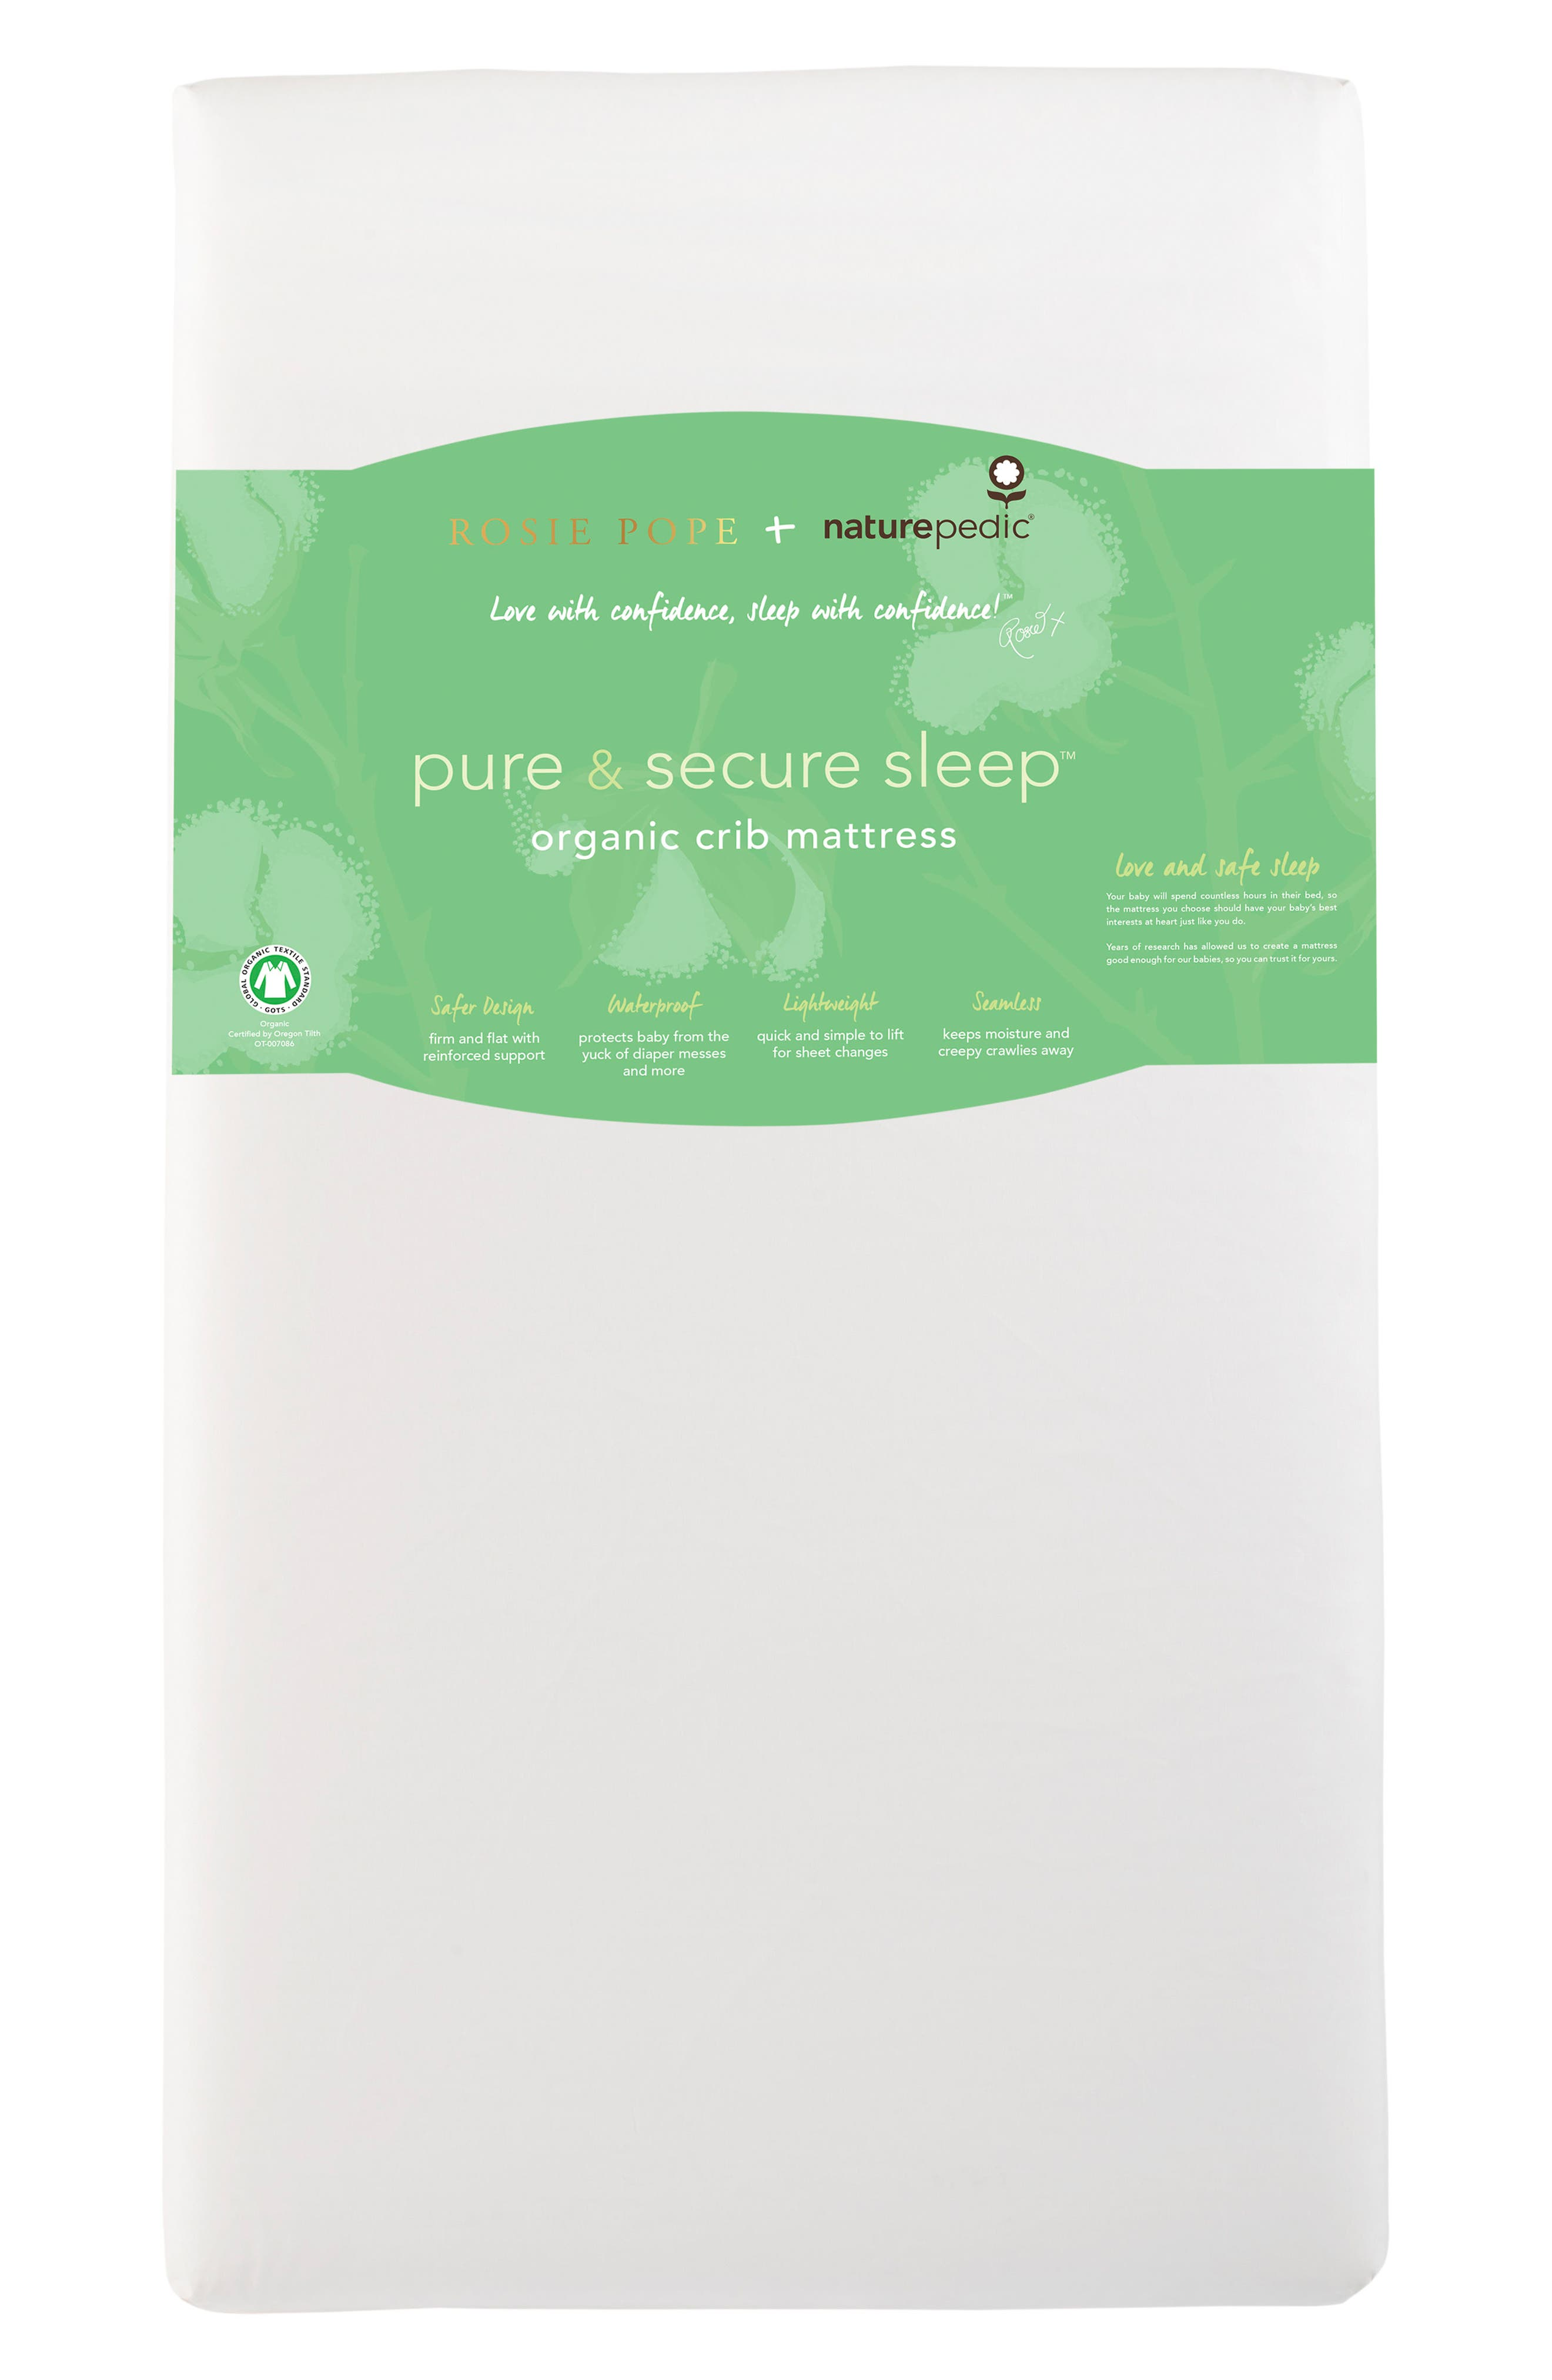 Alternate Image 2  - Naturepedic x Rosie Pope Pure & Secure Sleep Crib Mattress (Nordstrom Exclusive)